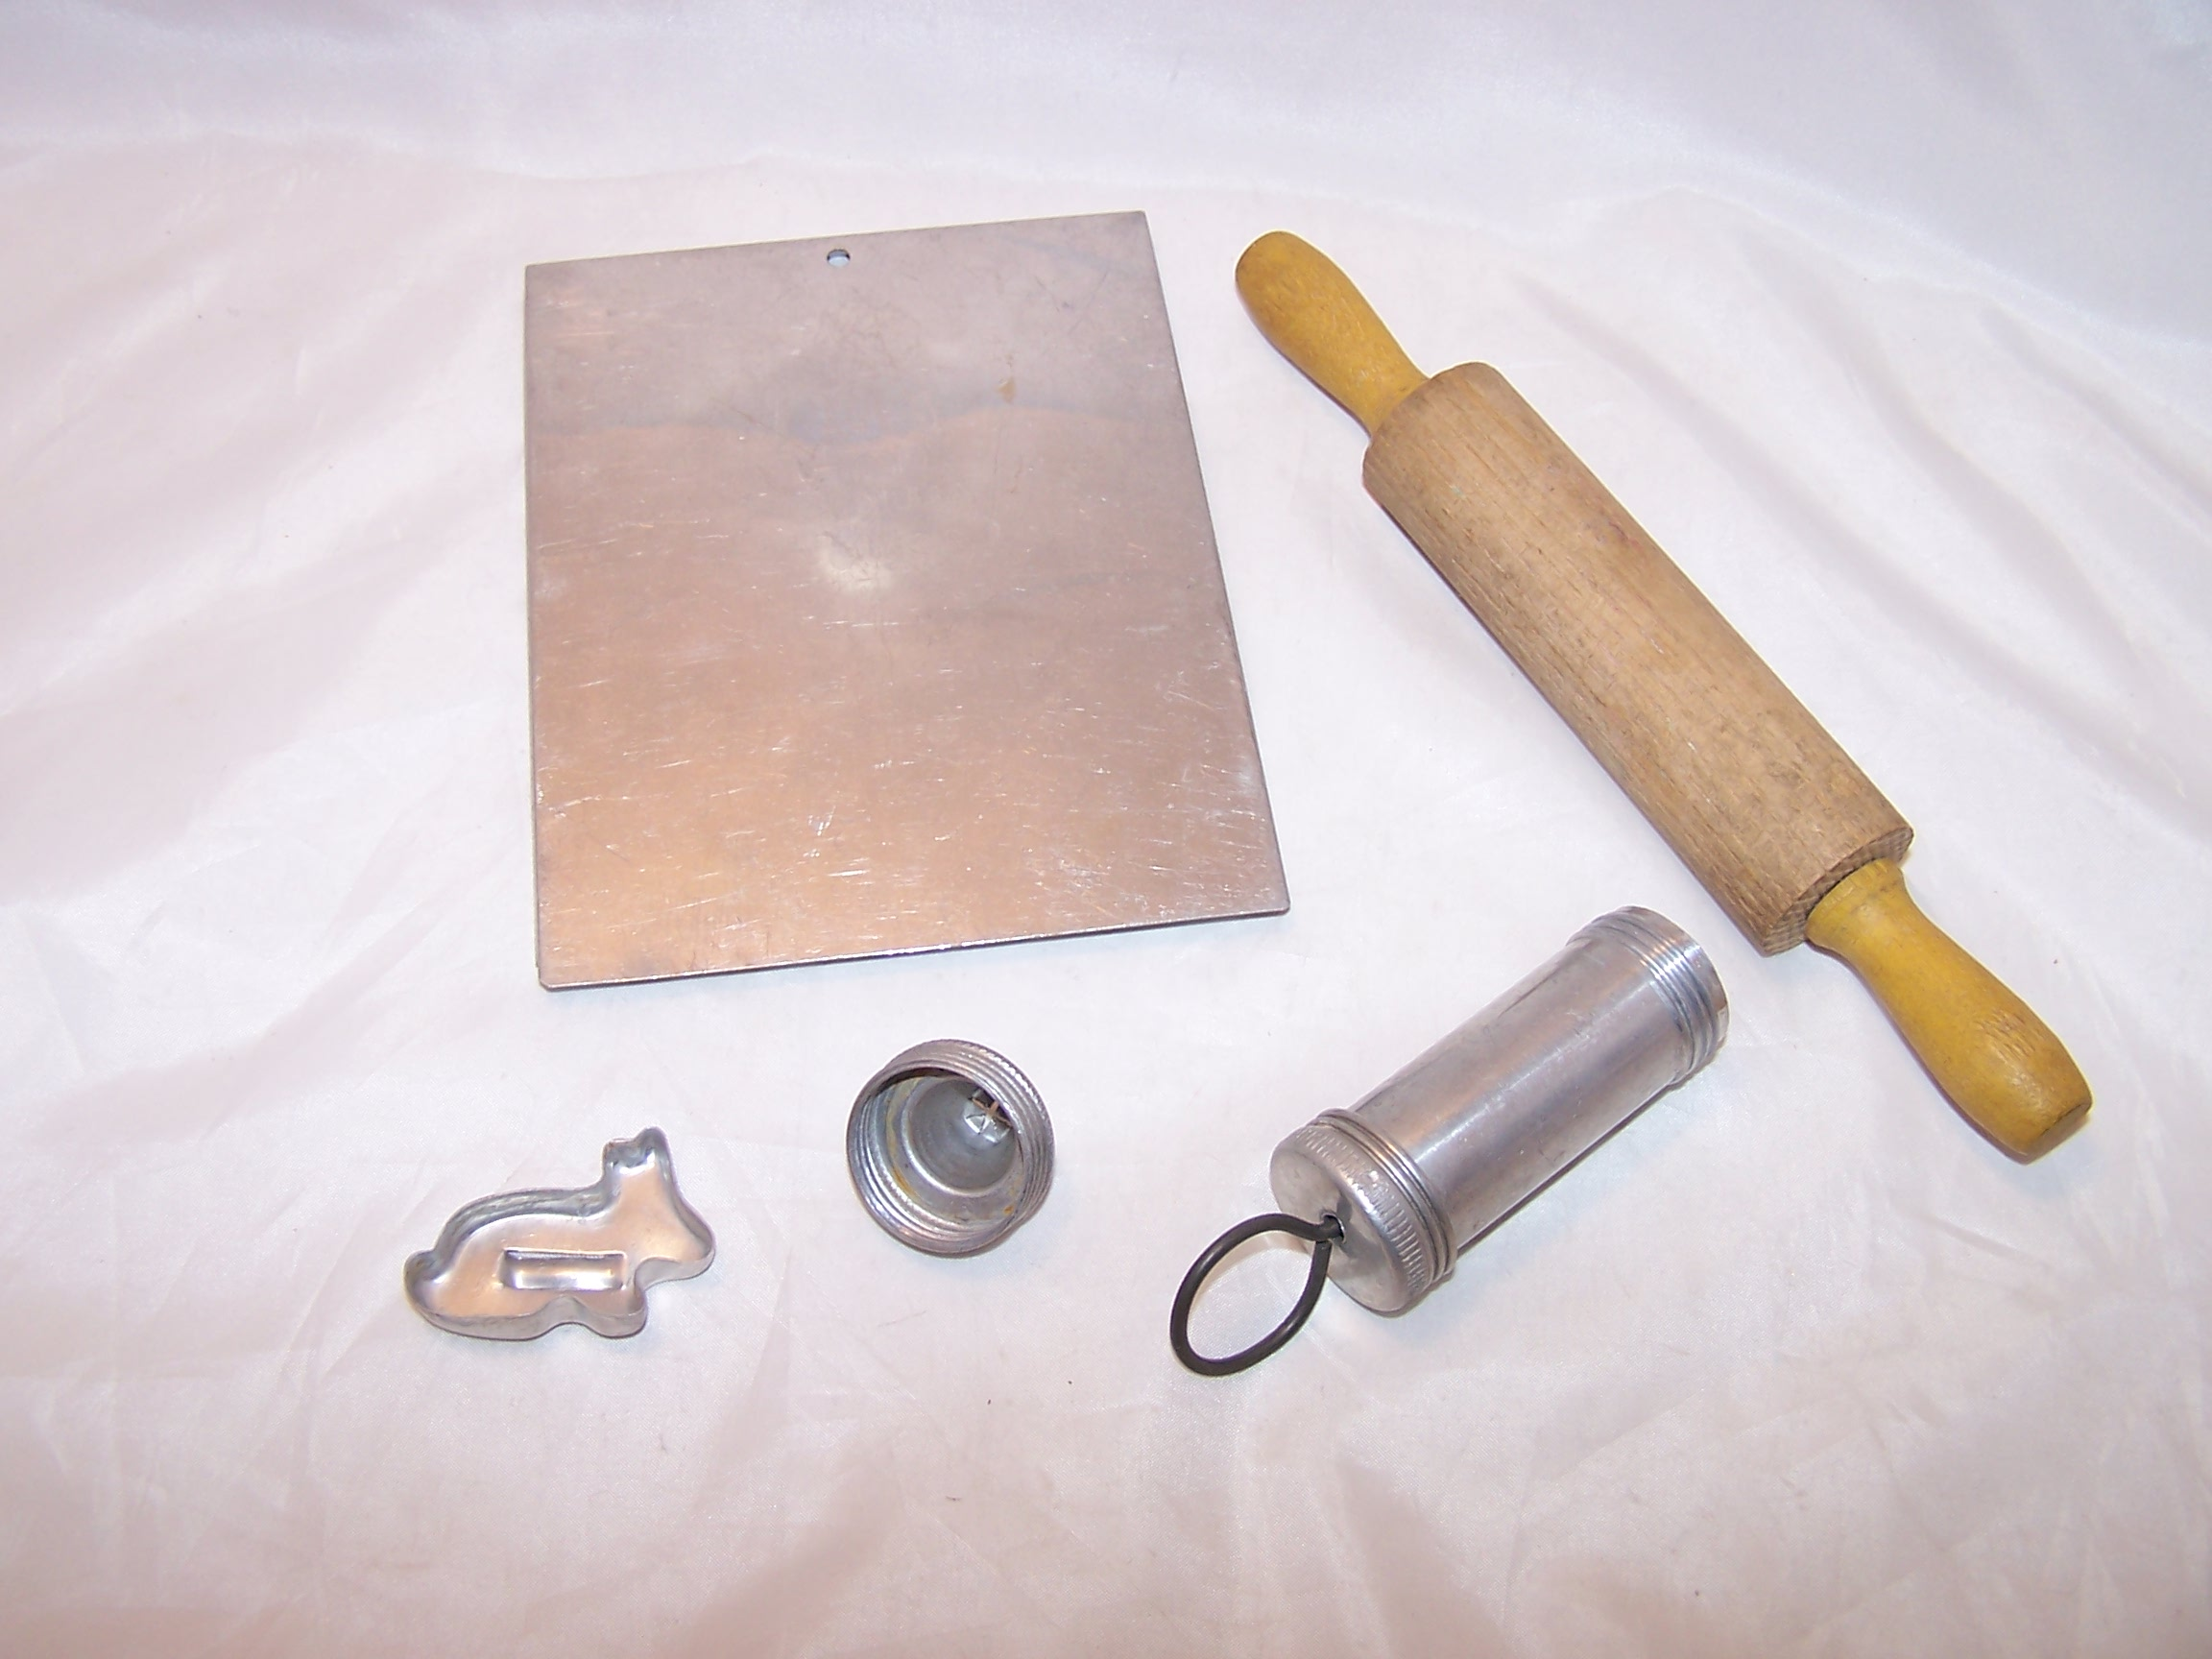 Image 2 of Toy Cookie Baking Set w Bunny Cutter, Vintage, Aluminum